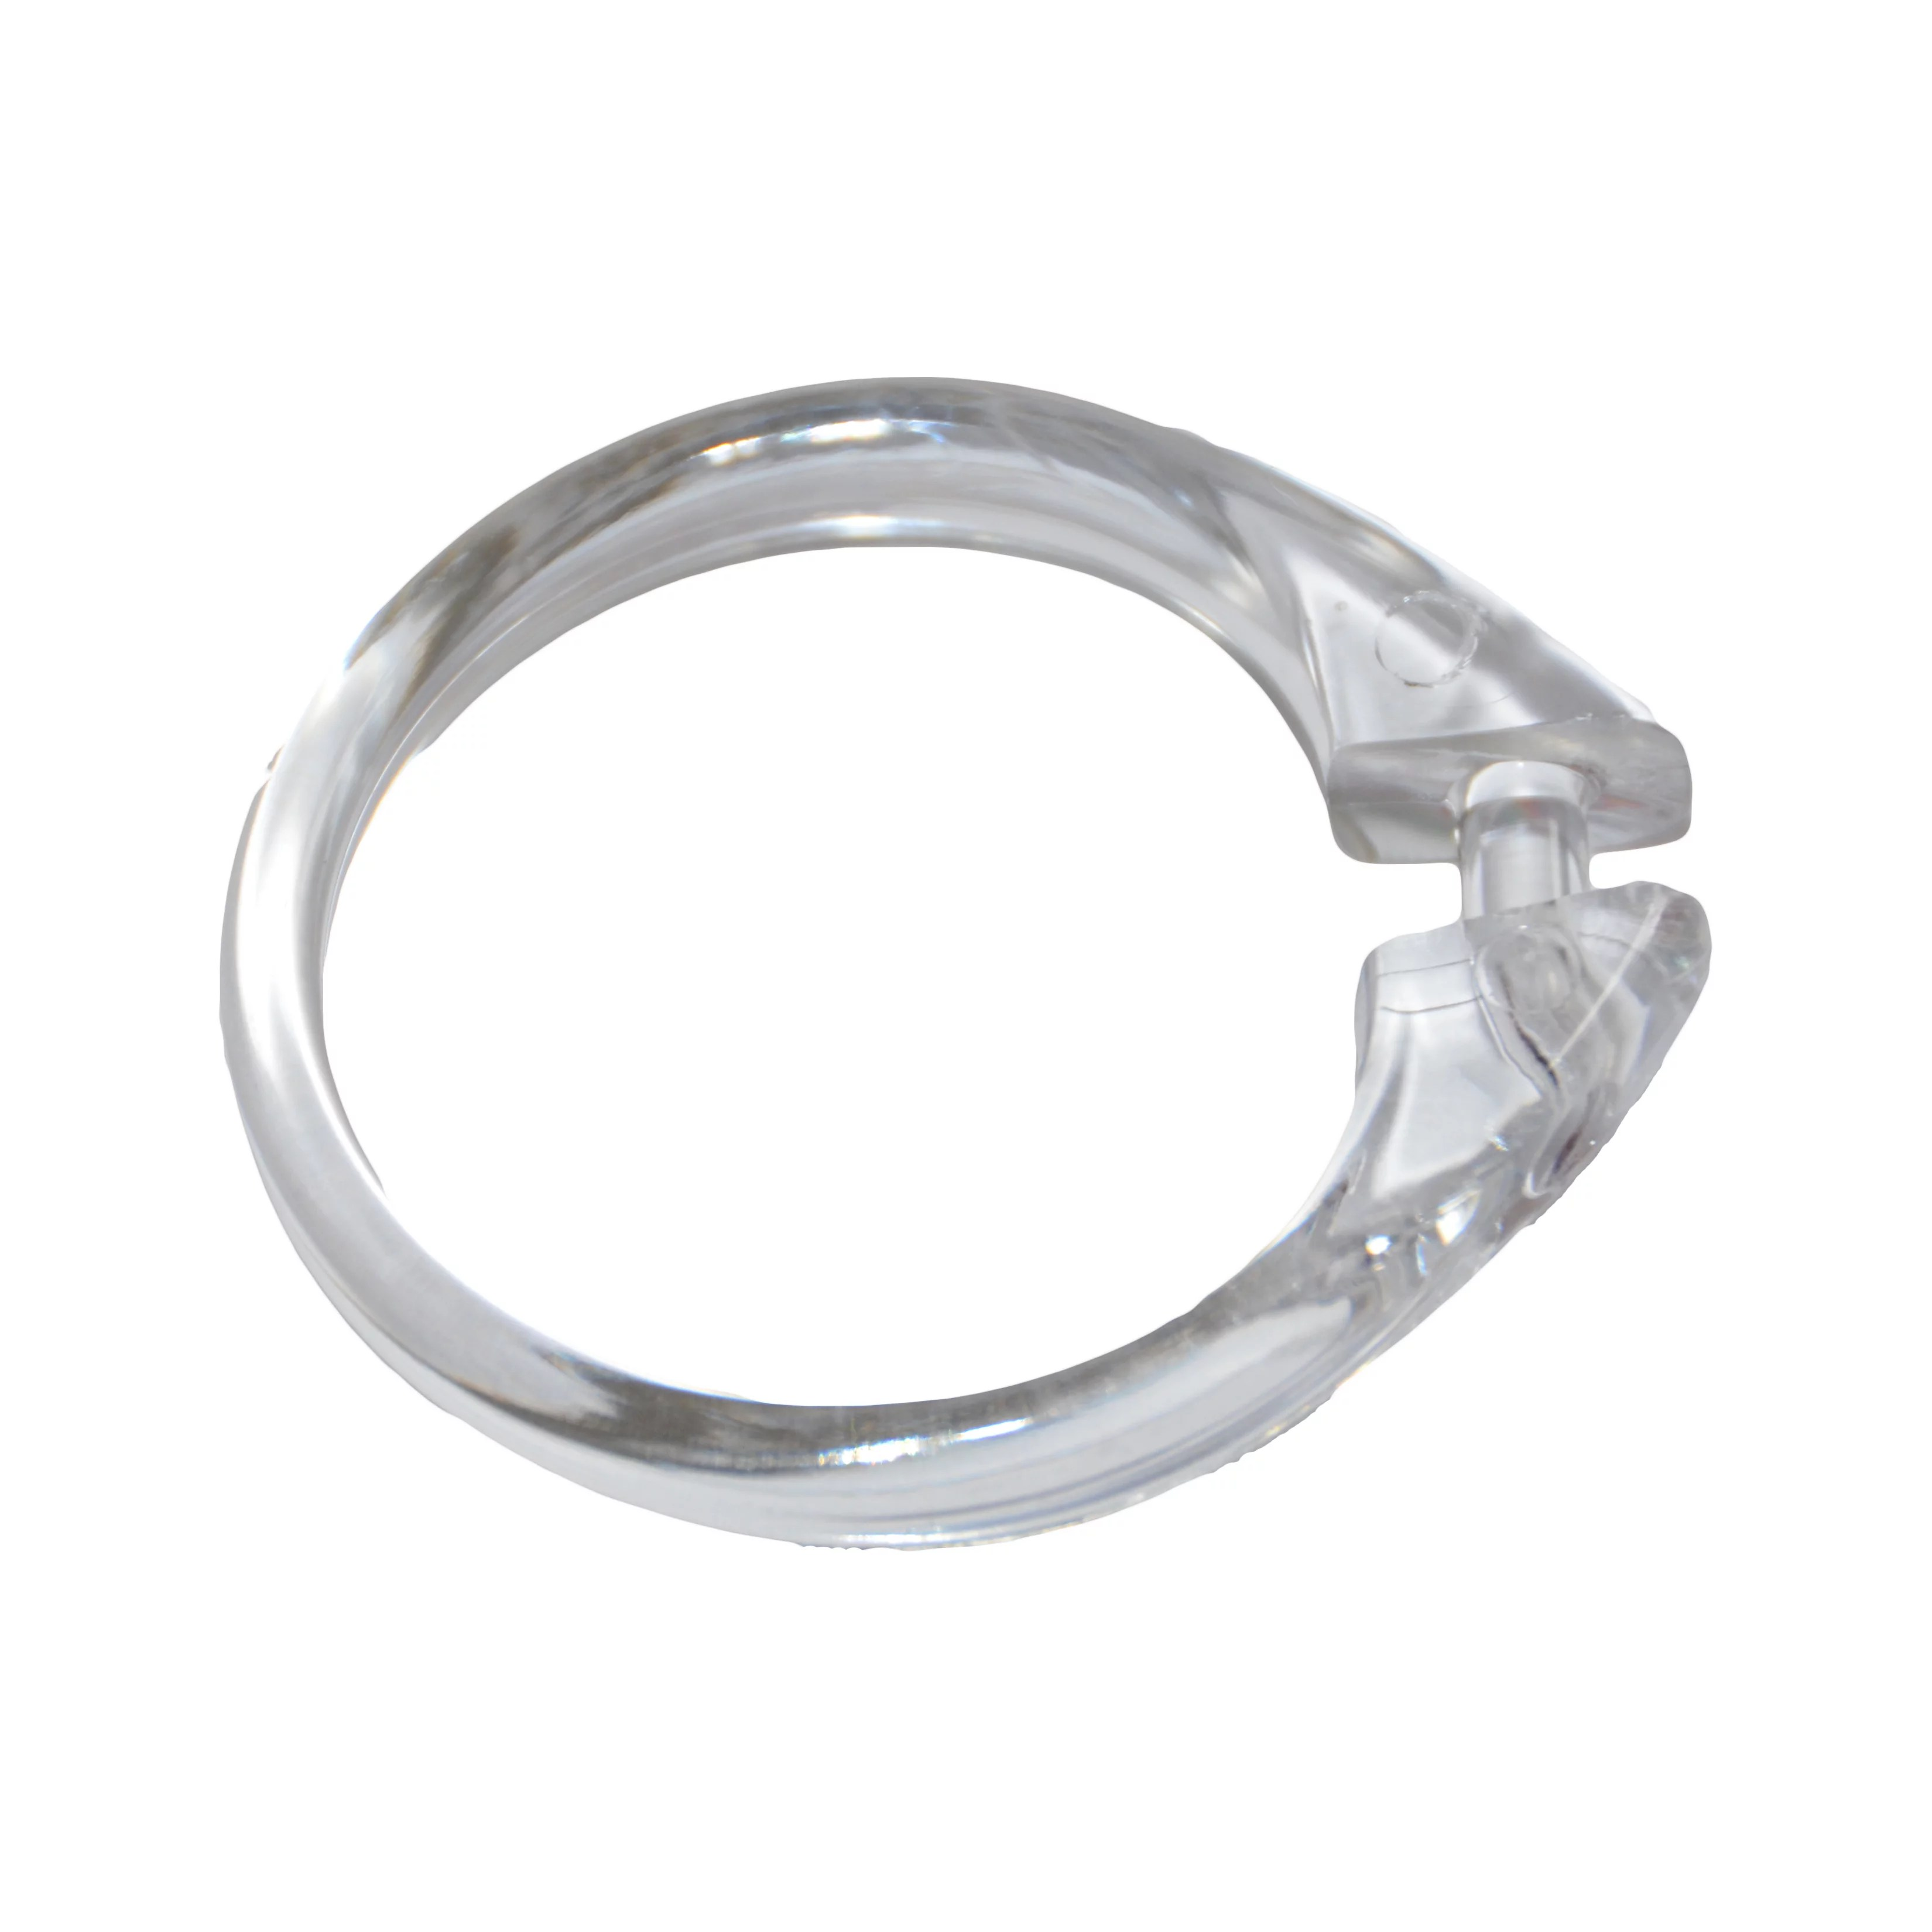 clear set of 12 easy to use plastic snap on shower curtain rings size 2 diameter